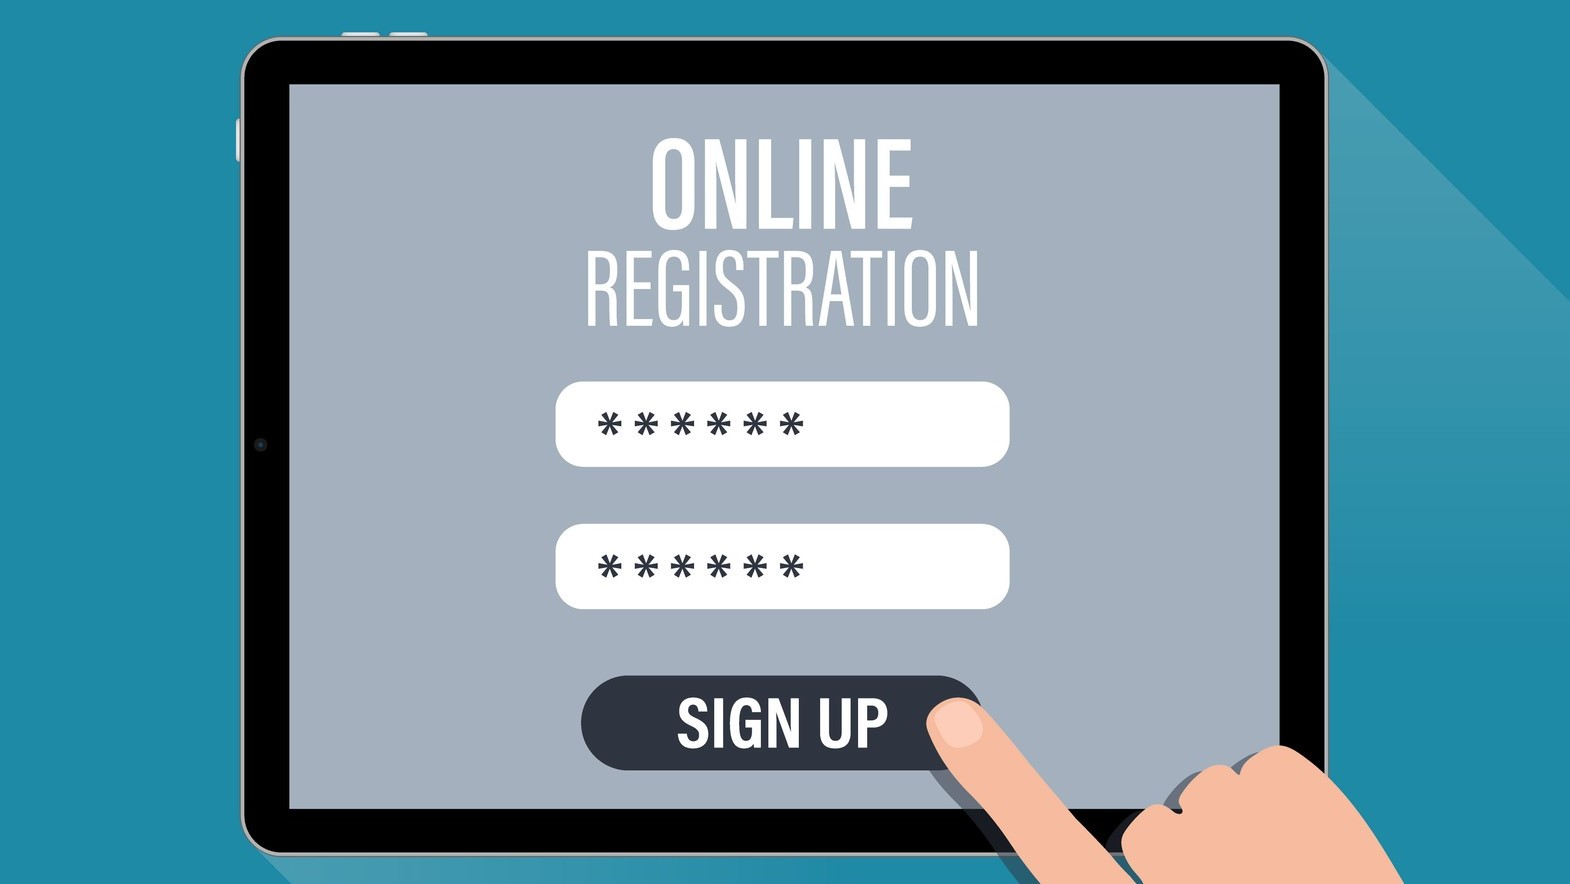 Online Register page. Registration page on tablet screen.